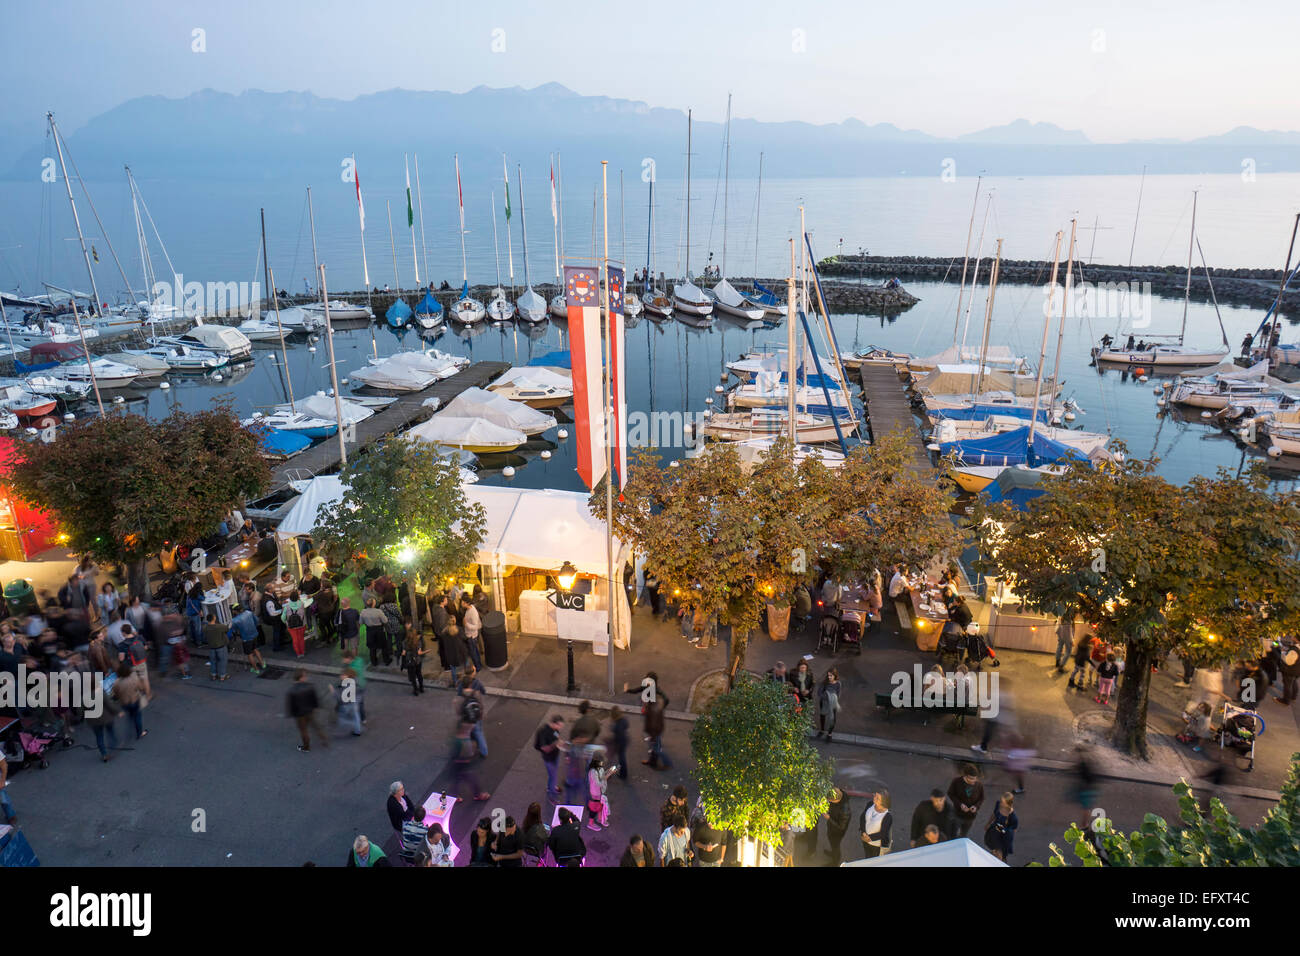 Lutry Wine Festival, Lavaux region, Lake Geneva, Swiss Alps,  Switzerland Stock Photo